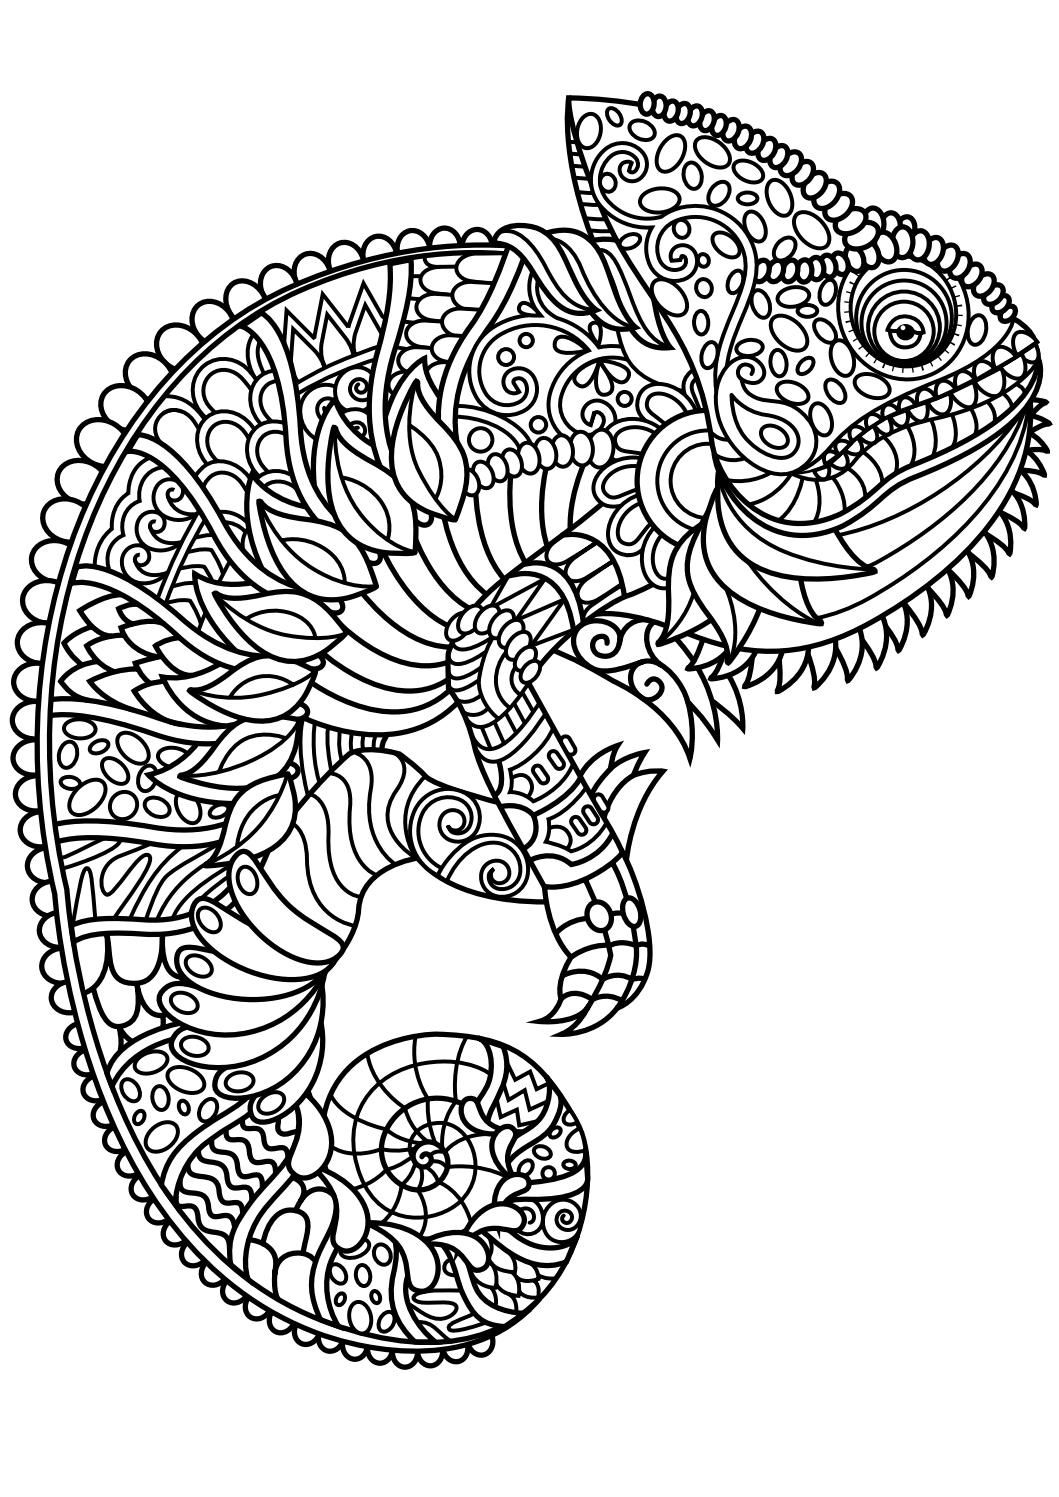 1059x1497 Printable Funny Animals Coloring Page Cute Dog Coloring Pages